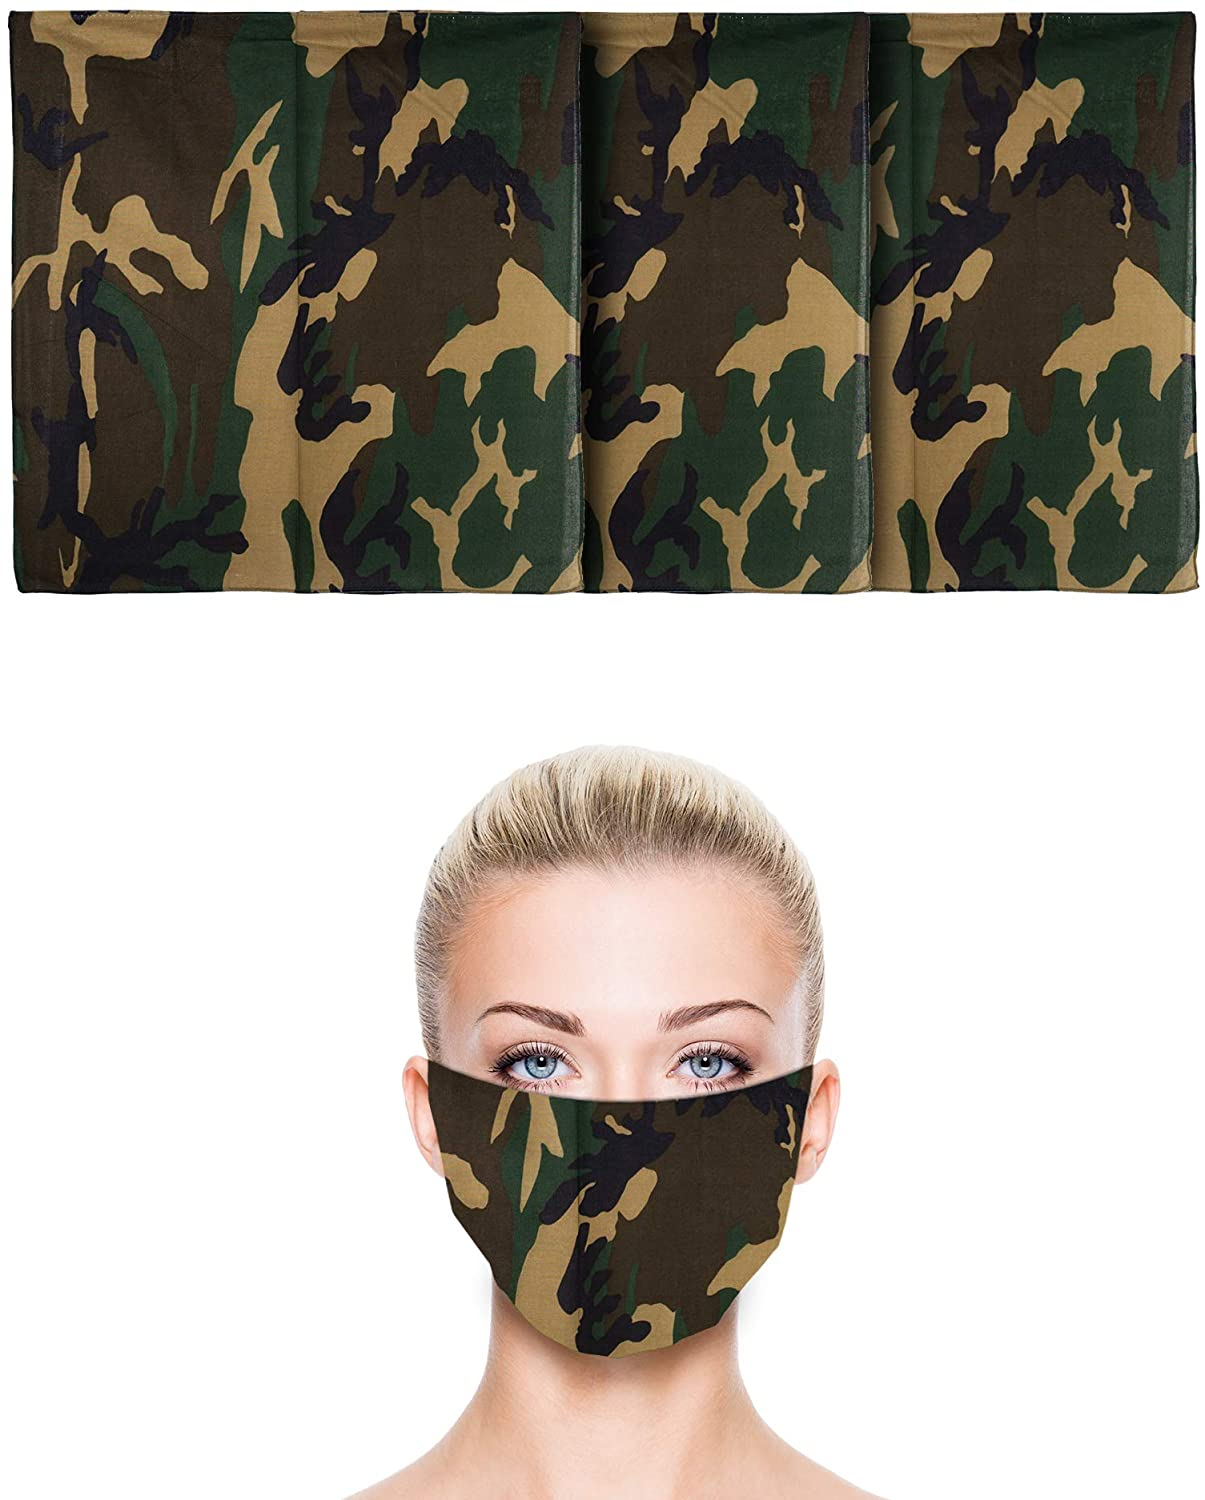 3 Pack | 100% Cotton U.S. Flag Bandana | Face Mask for Dust & Sun Protection | Nose Cover Scarf | 22